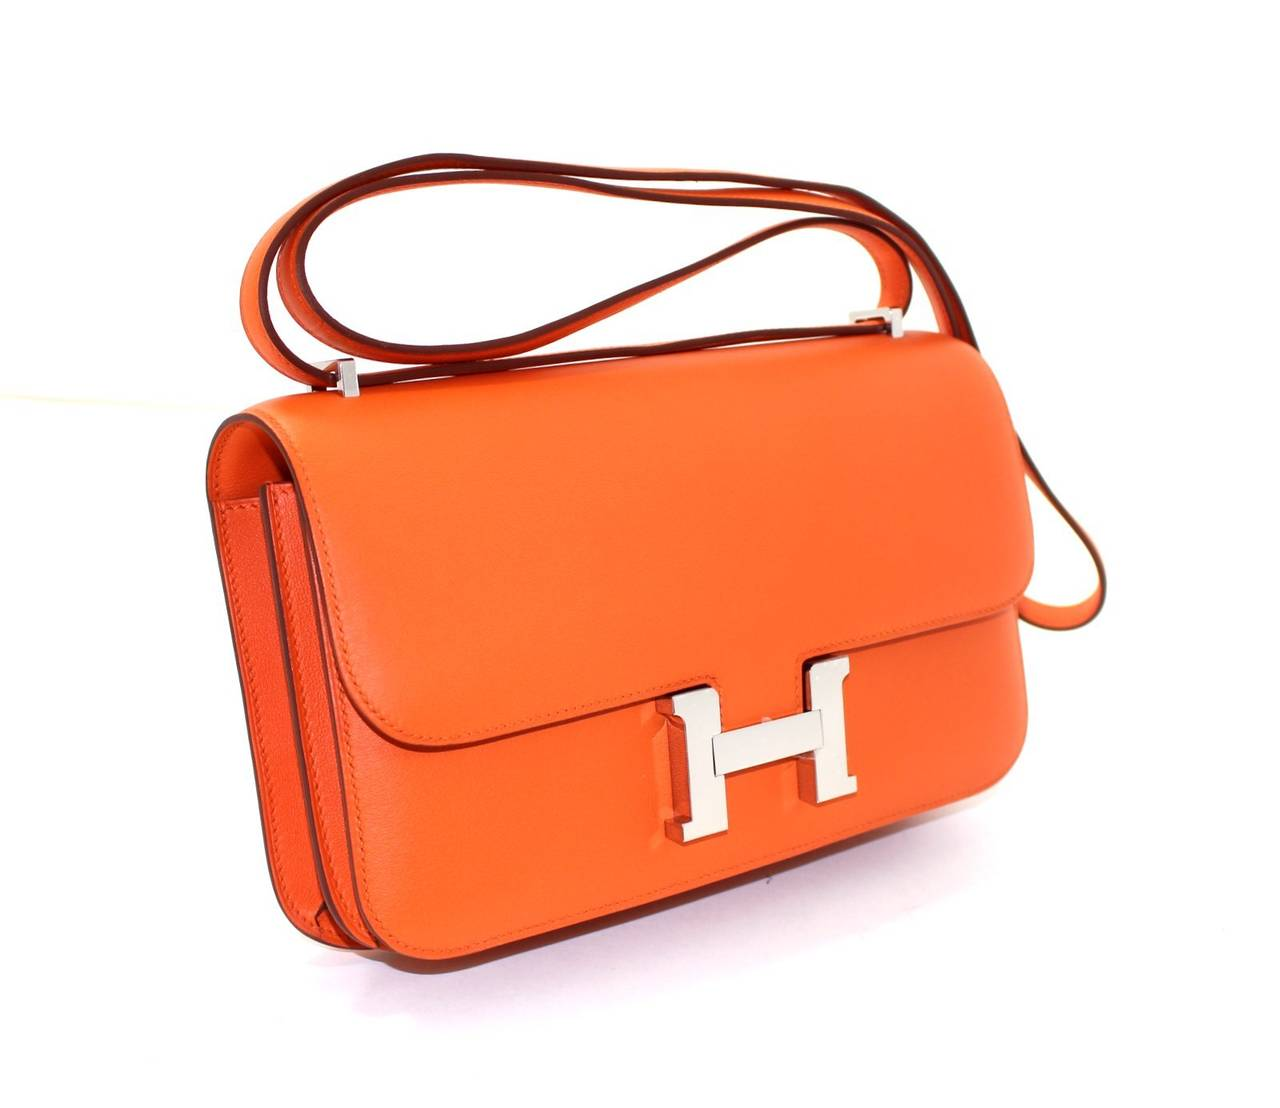 hermes wallets prices - Herm��s Orange Swift Leather Constance Elan CrossBody Shoulder Bag ...